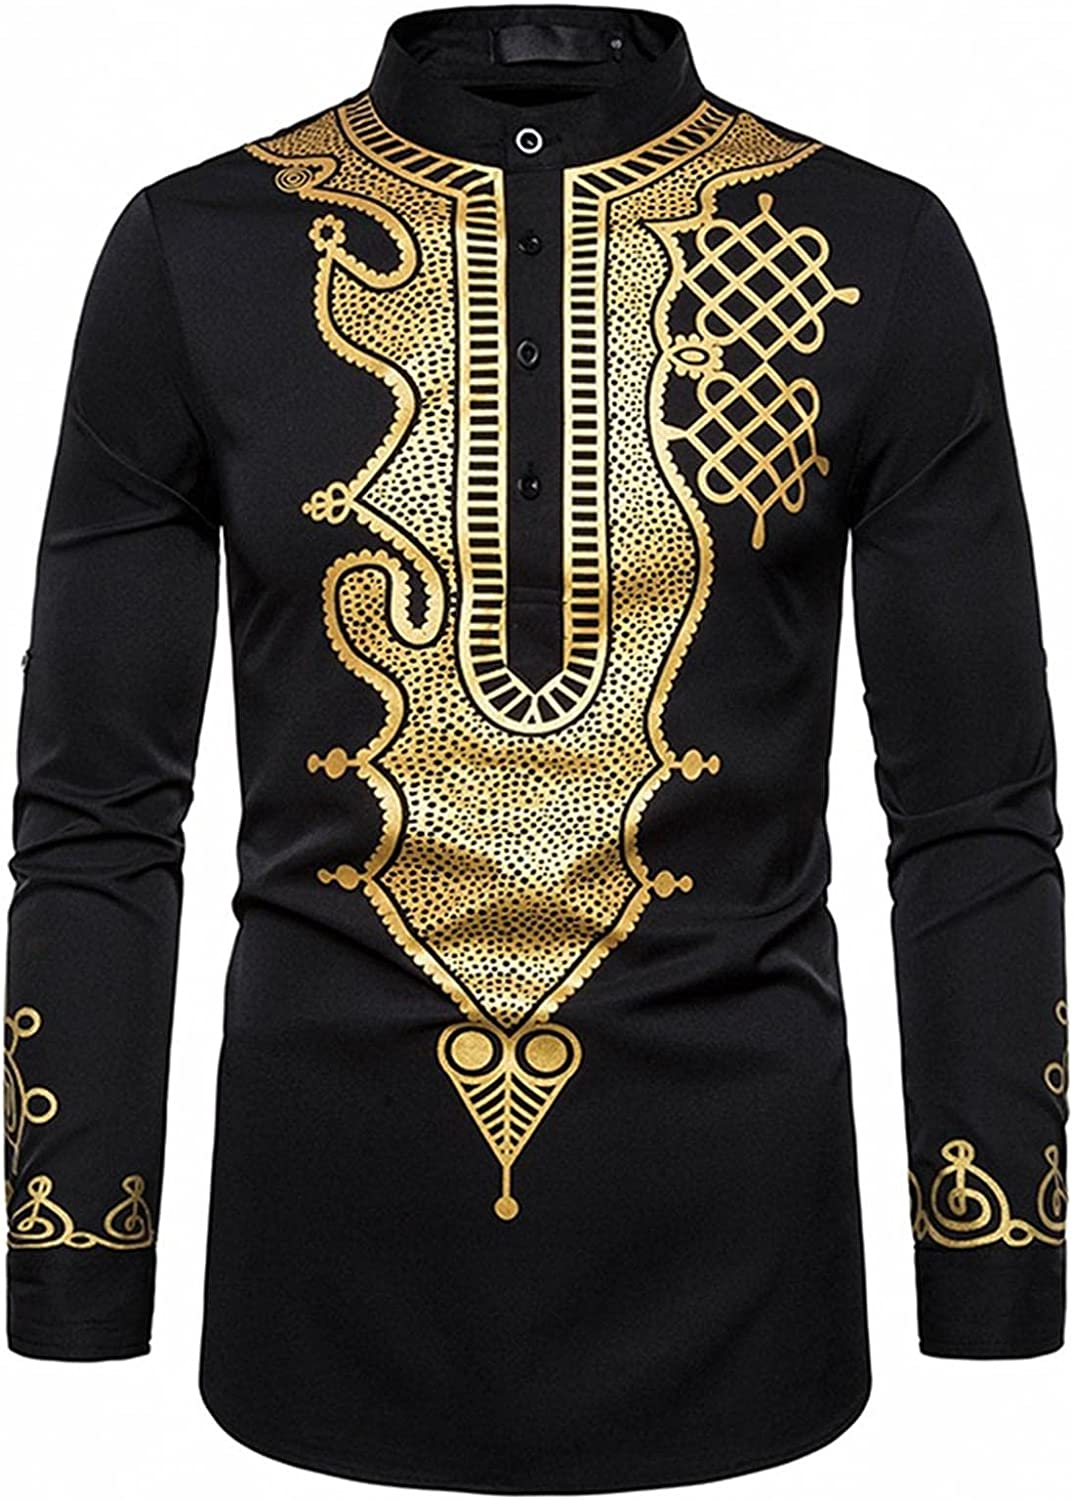 Men's African Dashiki Shirts New popularity Stand Button Collar Print Free Shipping Cheap Bargain Gift Tops Gold